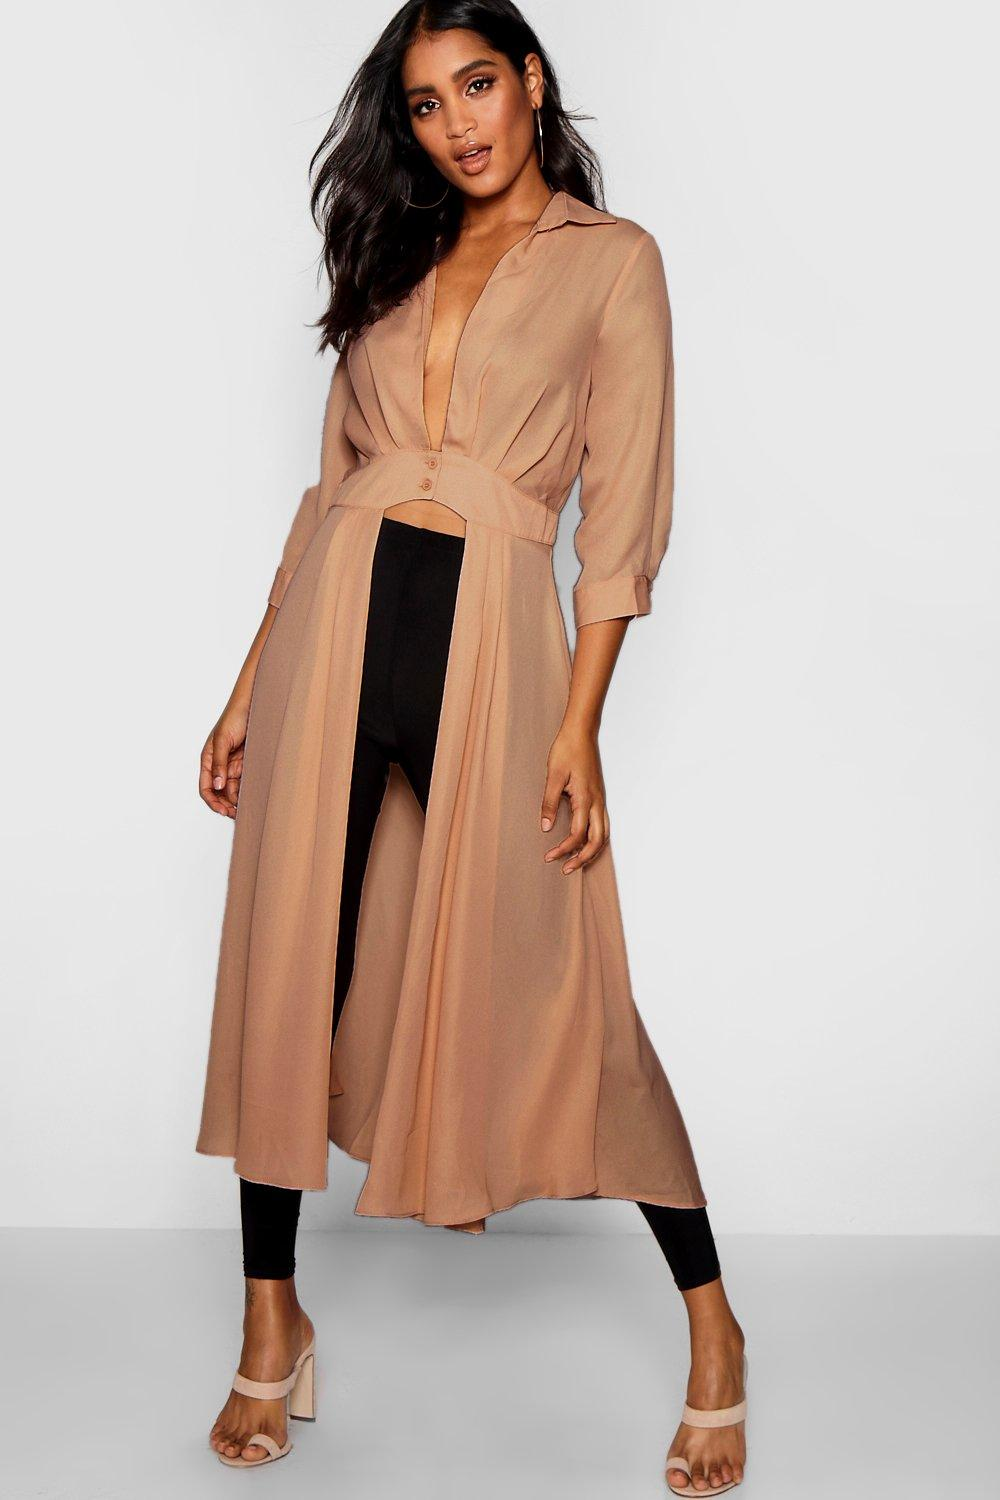 aabcee9c002 Womens Stone Plunge Neck Split Maxi Shirt. Hover to zoom